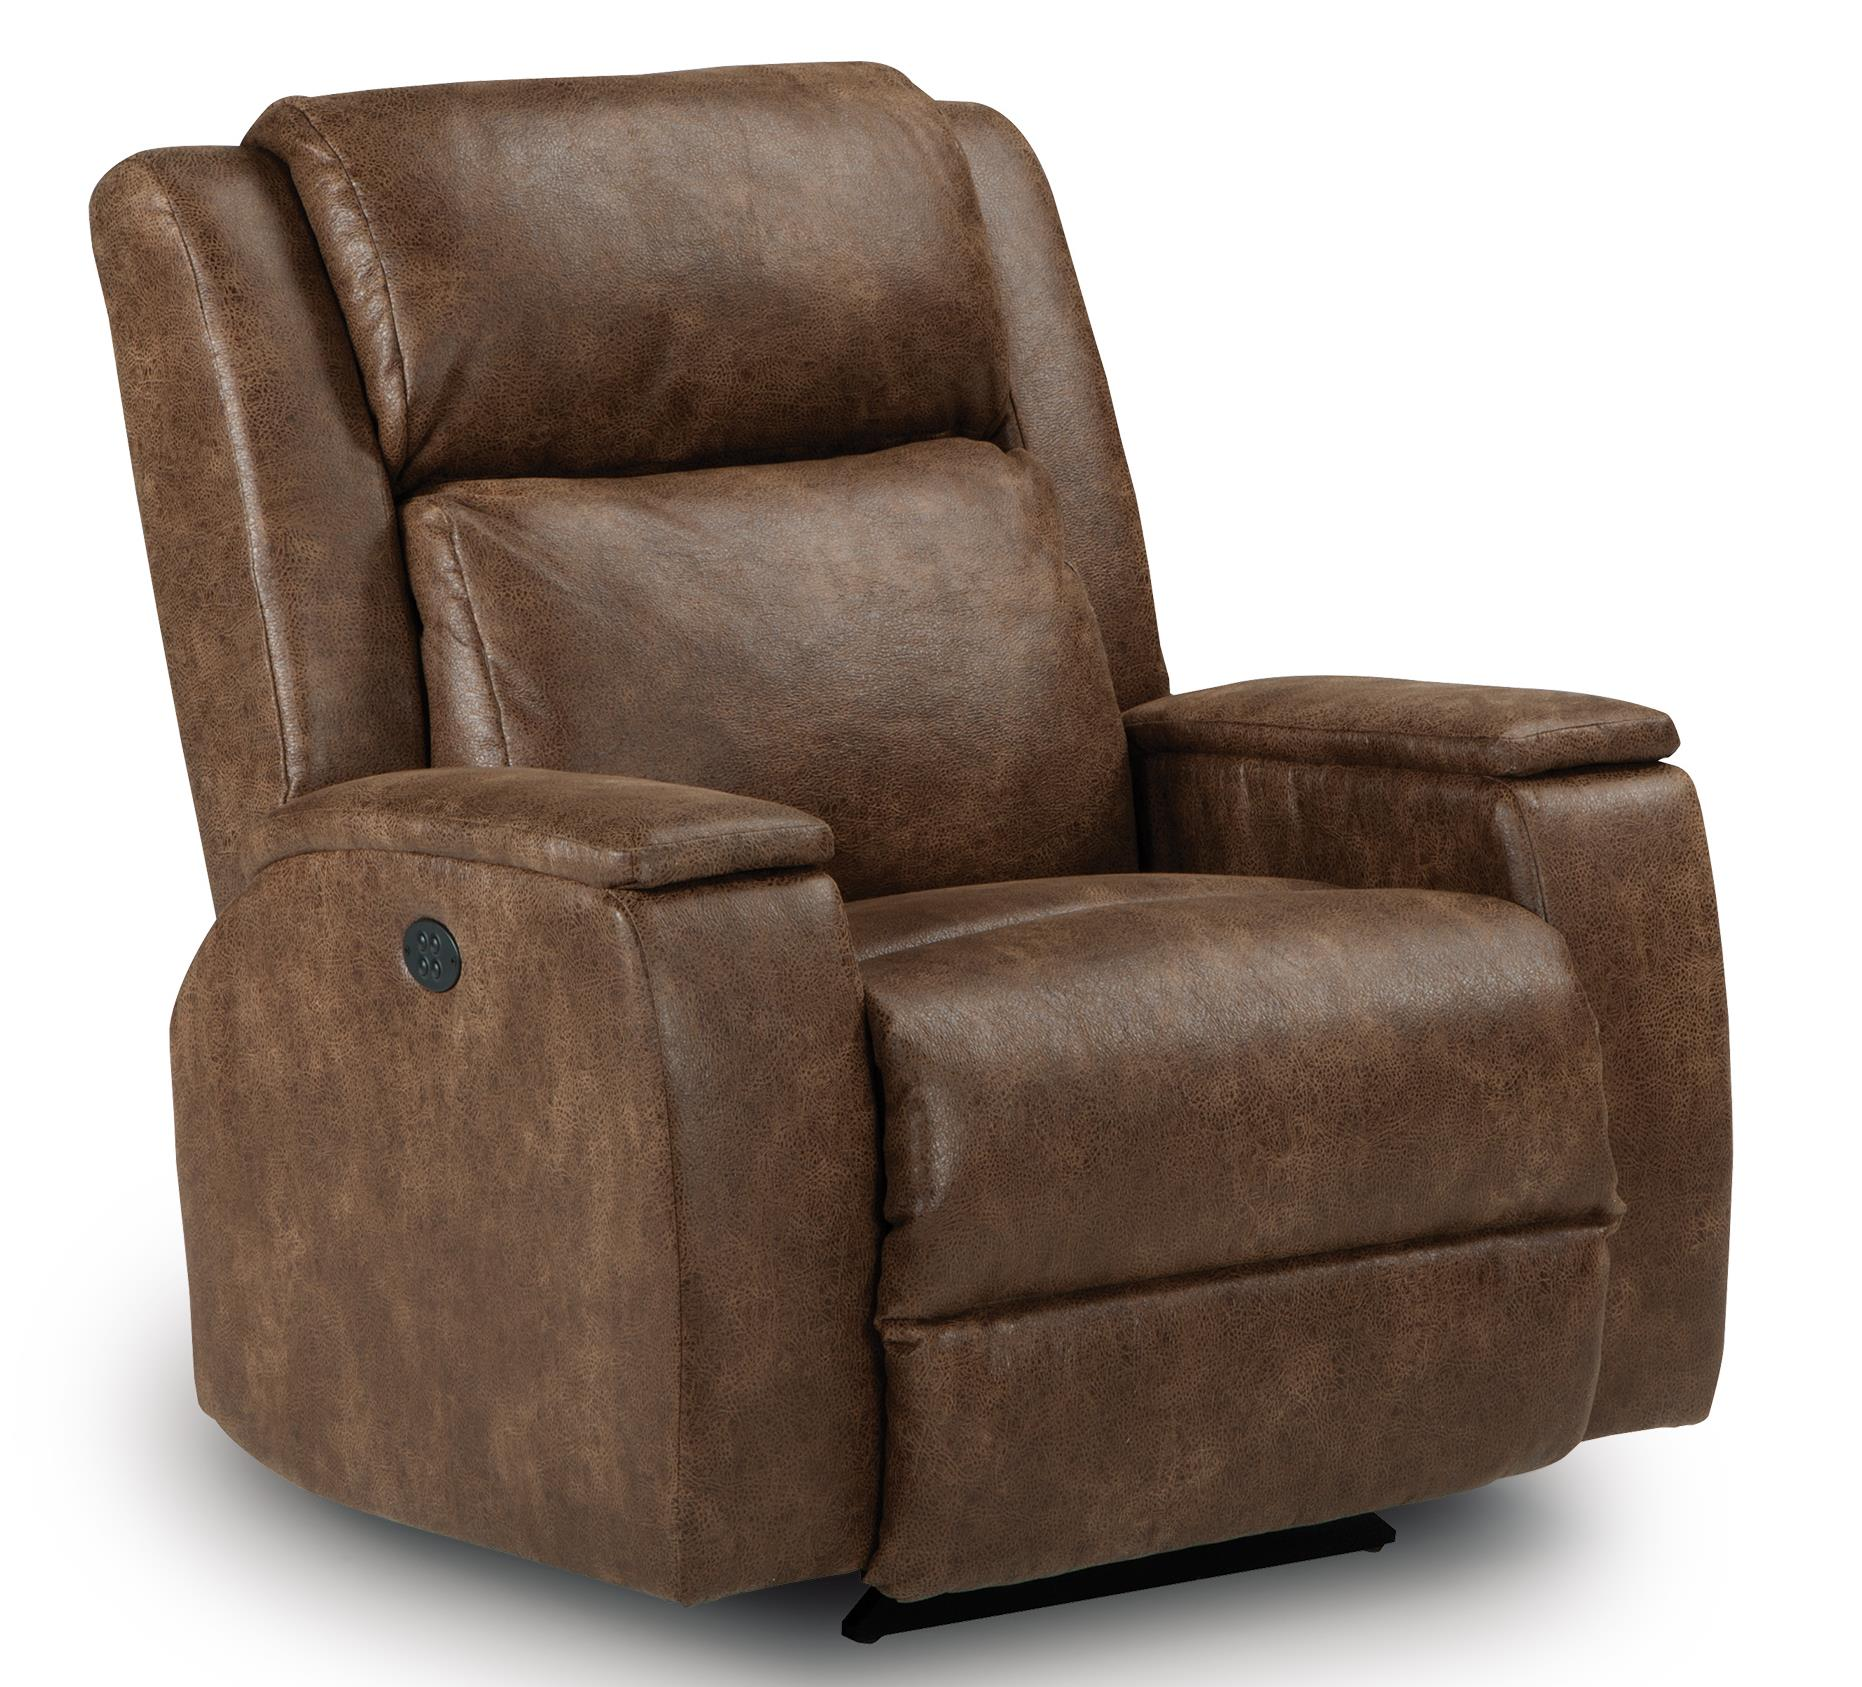 Best Home Furnishings Recliners - Medium Colton Power Space Saver Recliner - Item Number: 7NZ44-23286C